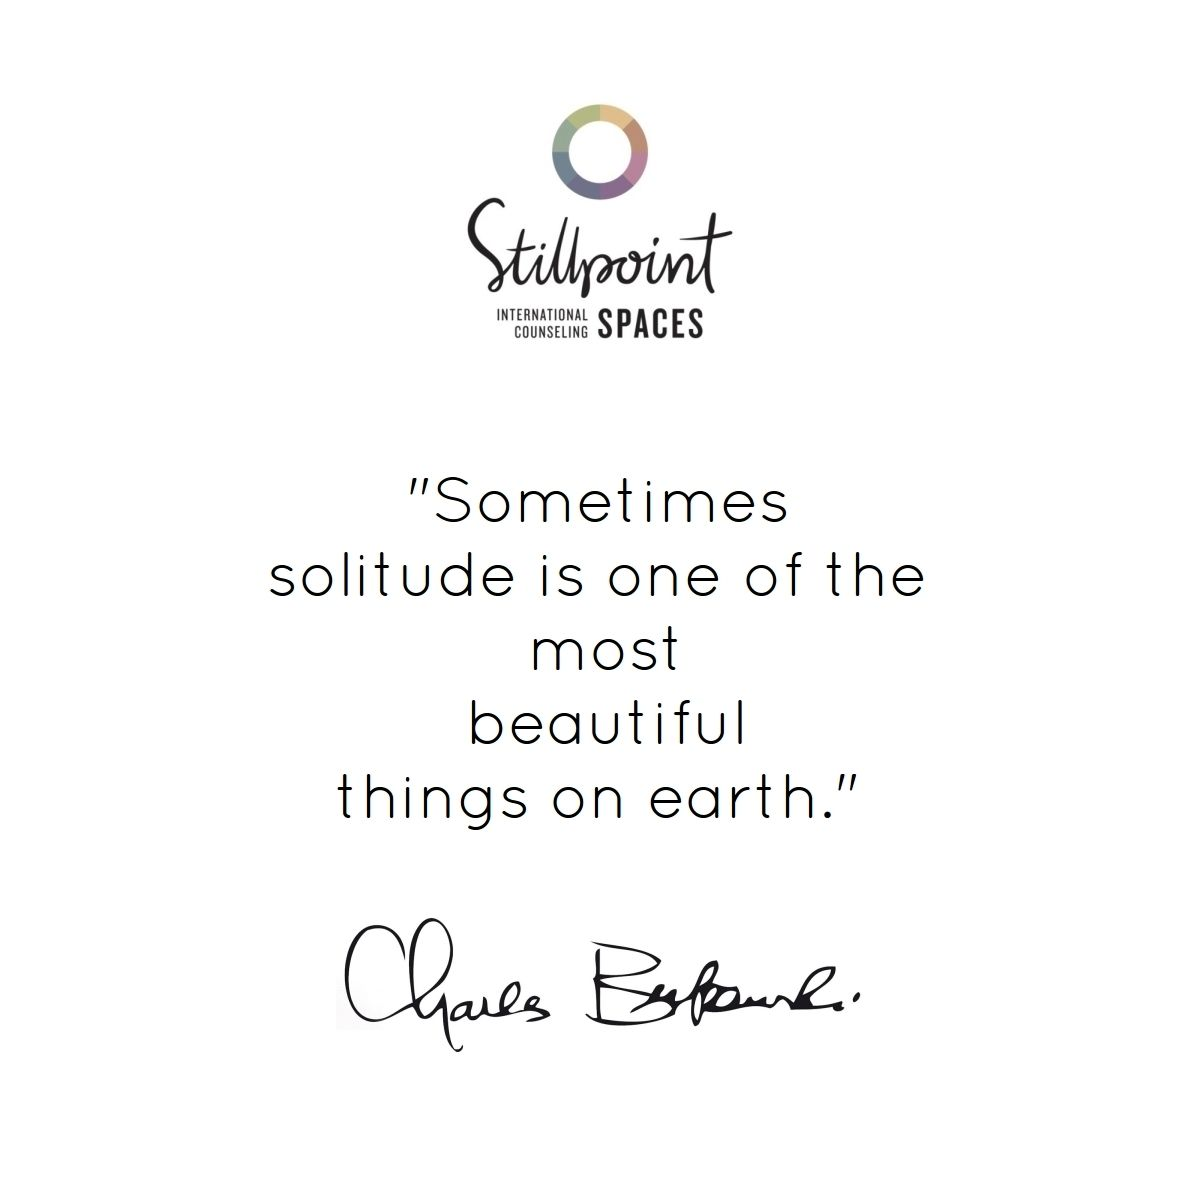 """""""Sometimes solitude is one of the most beautiful things on earth."""" - Charles Bukowski"""